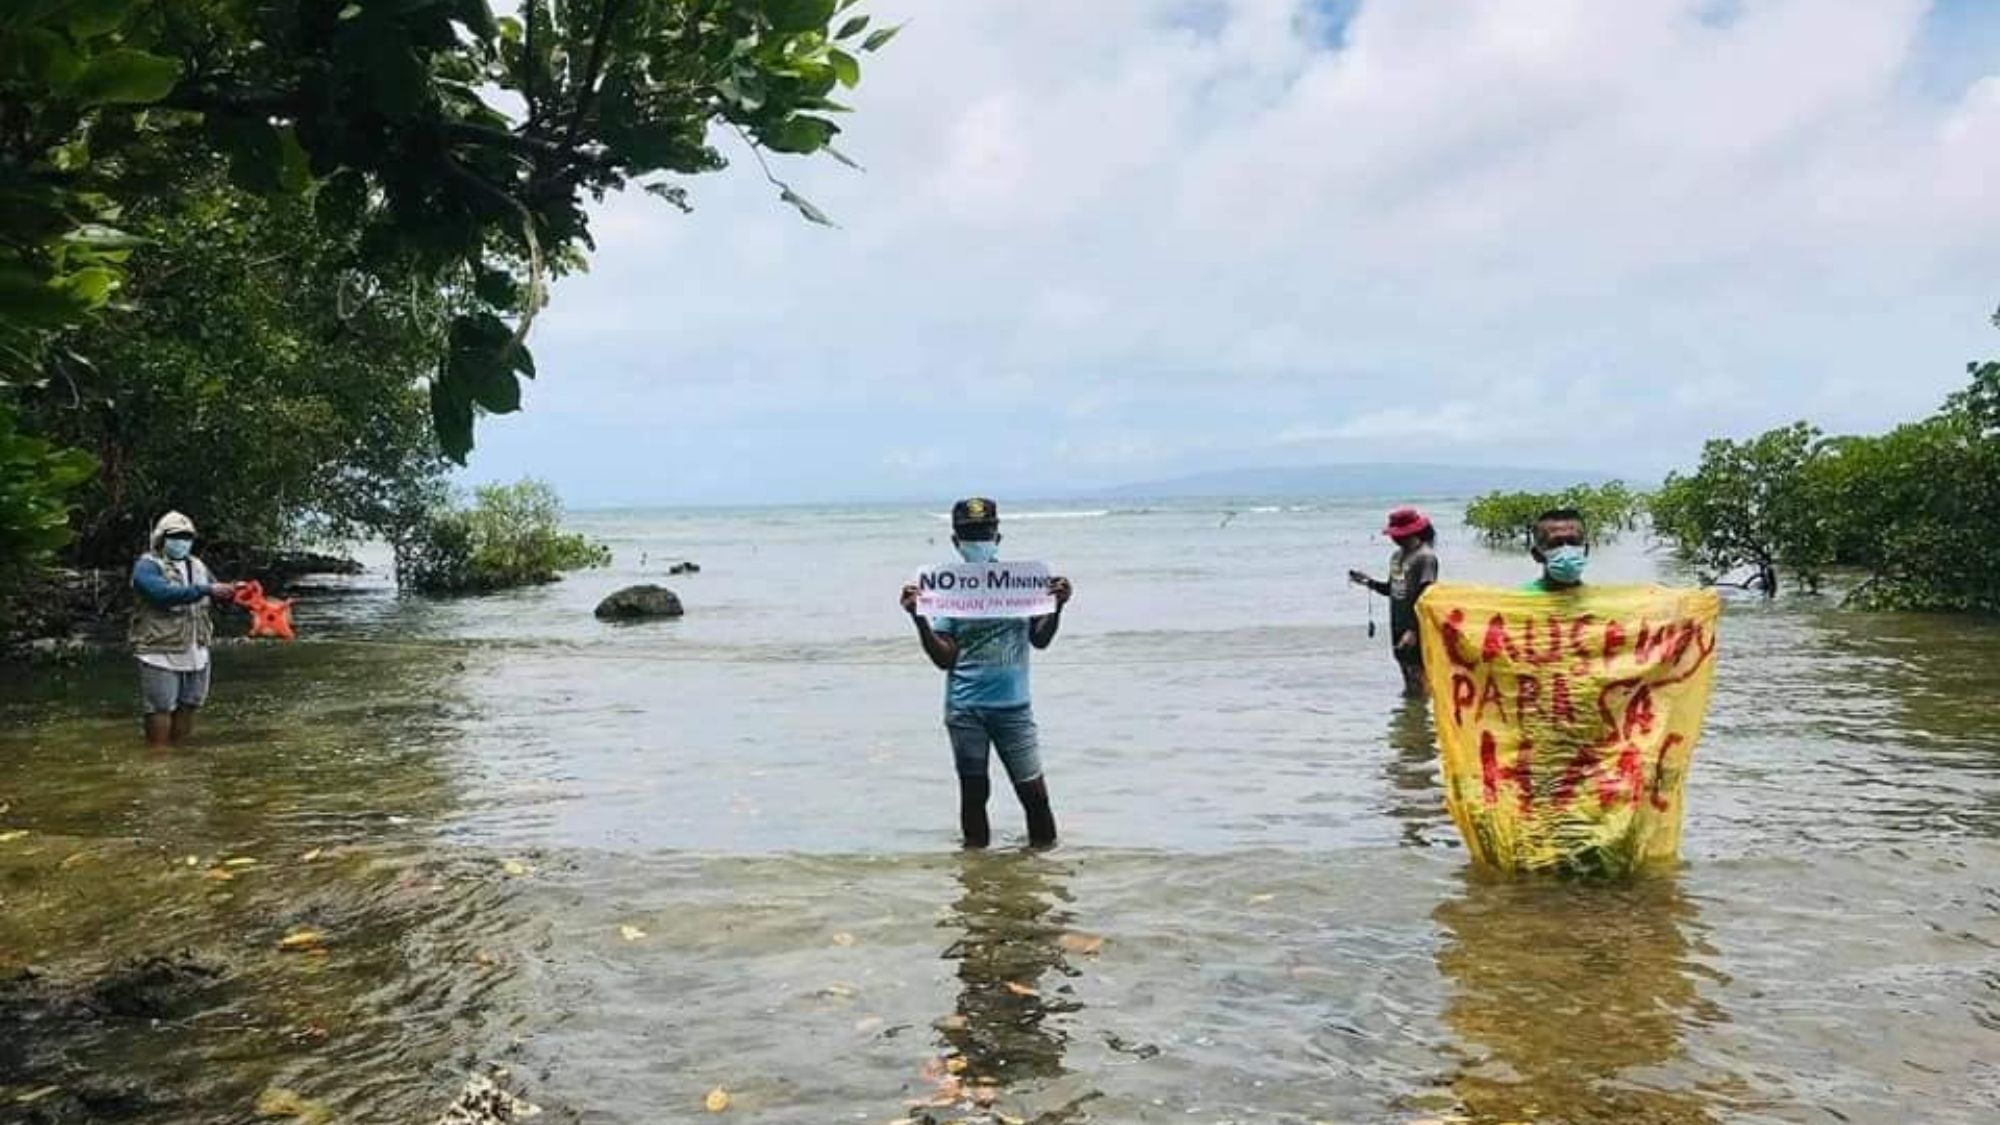 Island villagers in Samar rise up against mining interests